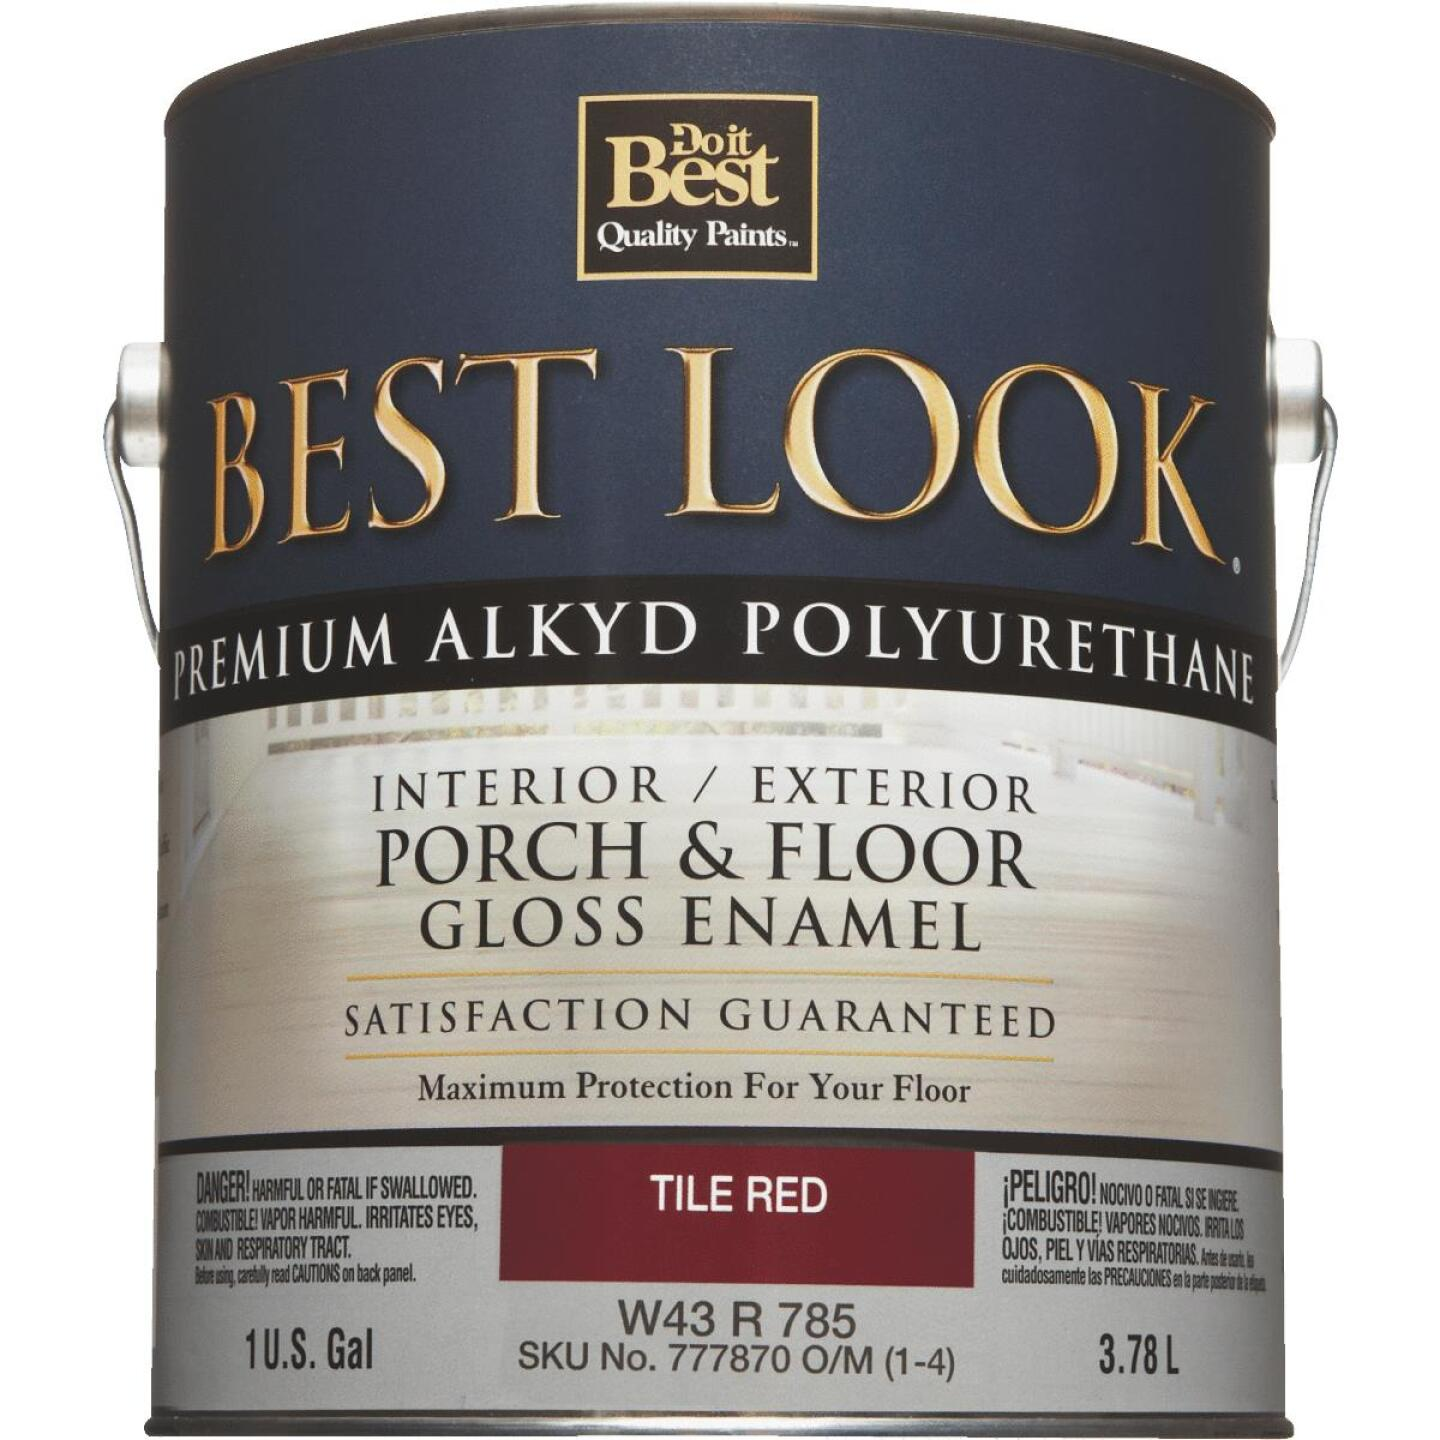 Best Look 1 Gal. Tile Red Polyurethane Gloss Porch & Floor Enamel Image 2